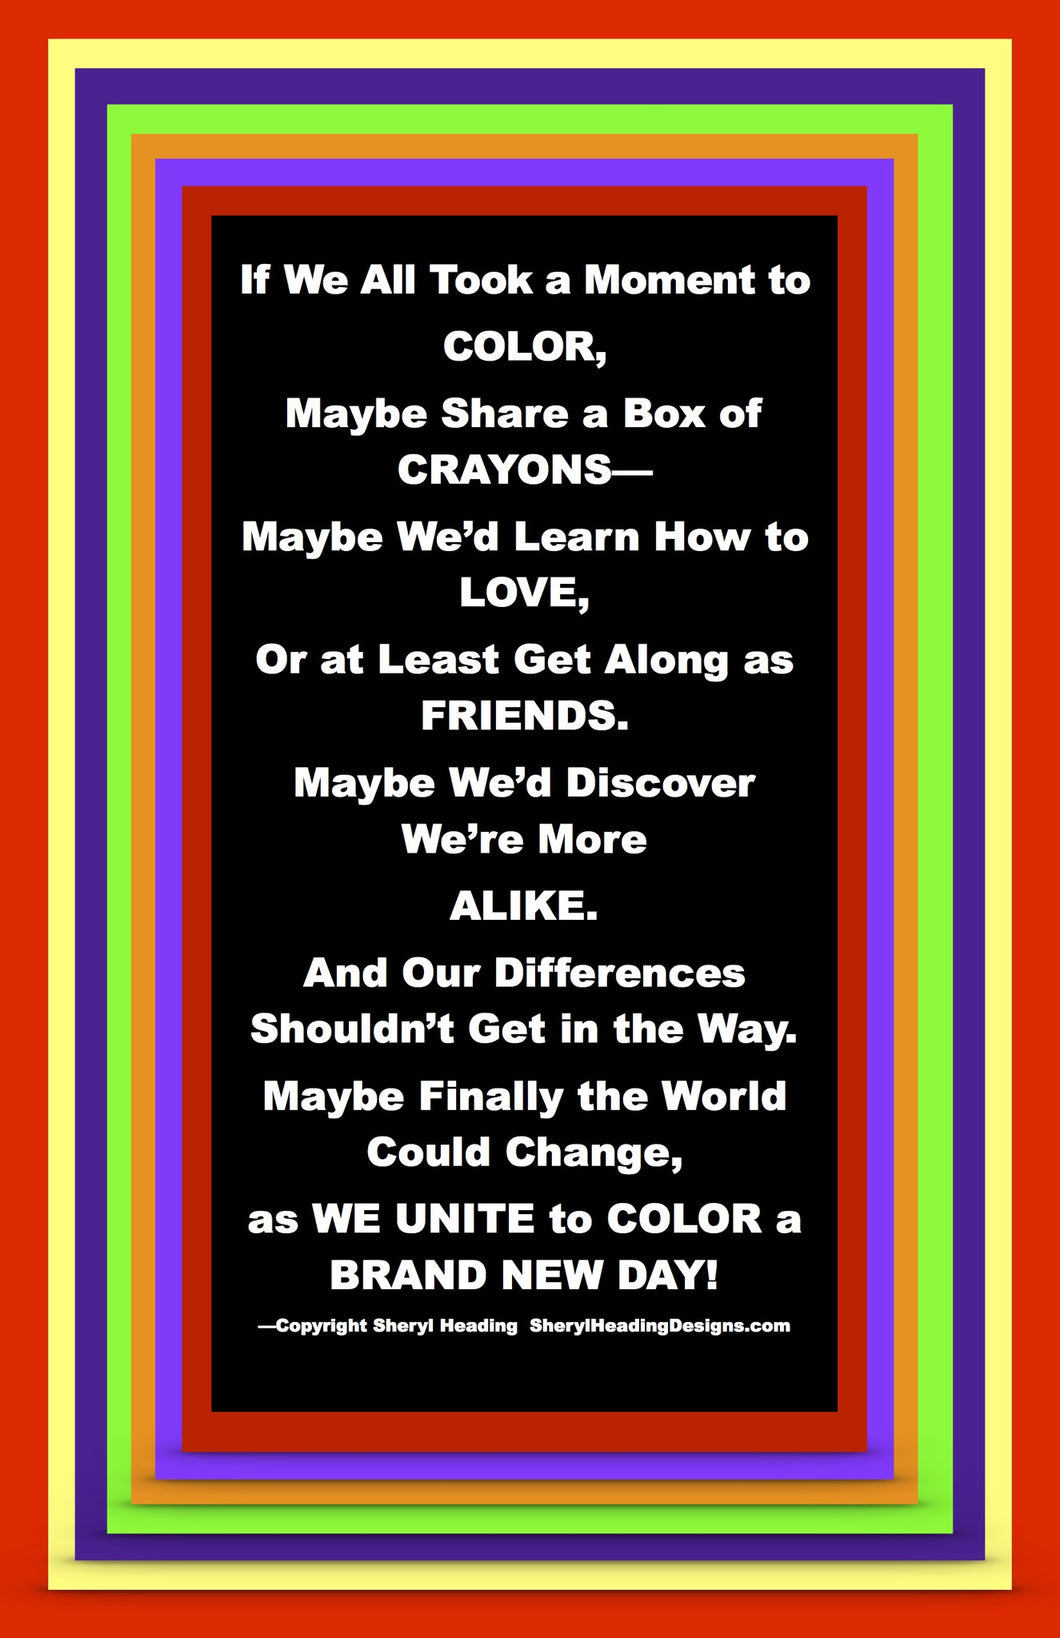 Color A Brand New Day! Poster - Sheryl Heading Designs